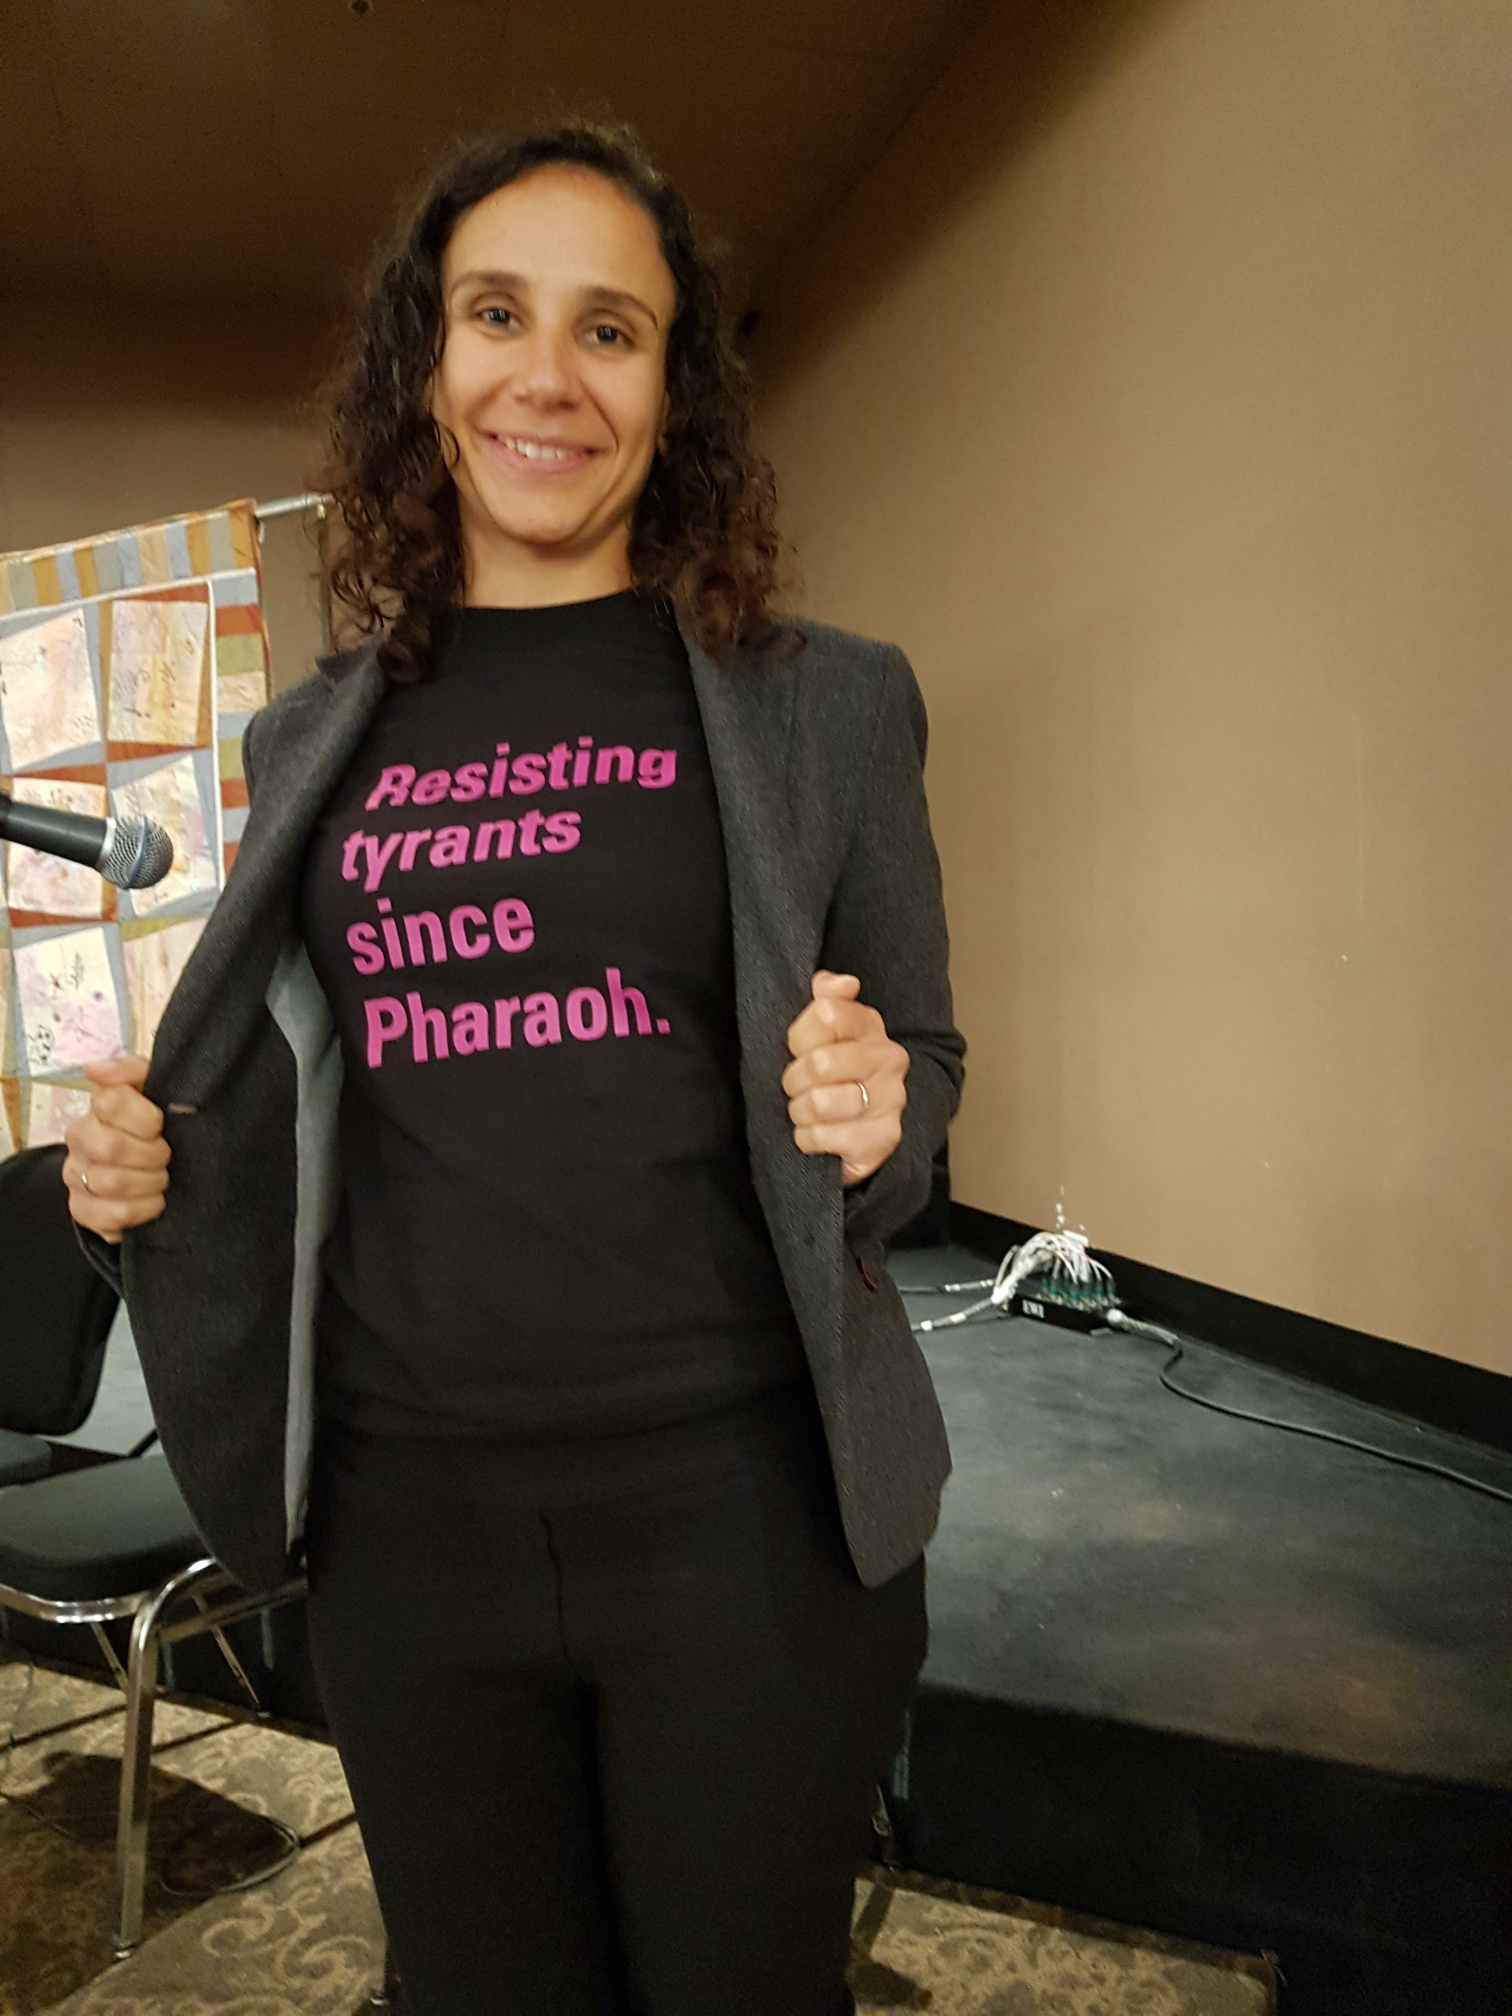 My shirt for Yom Kippur: Resisting Tyrants Since Pharoah. Shirt by and in support of T'ruth: Rabbis for Human Rights